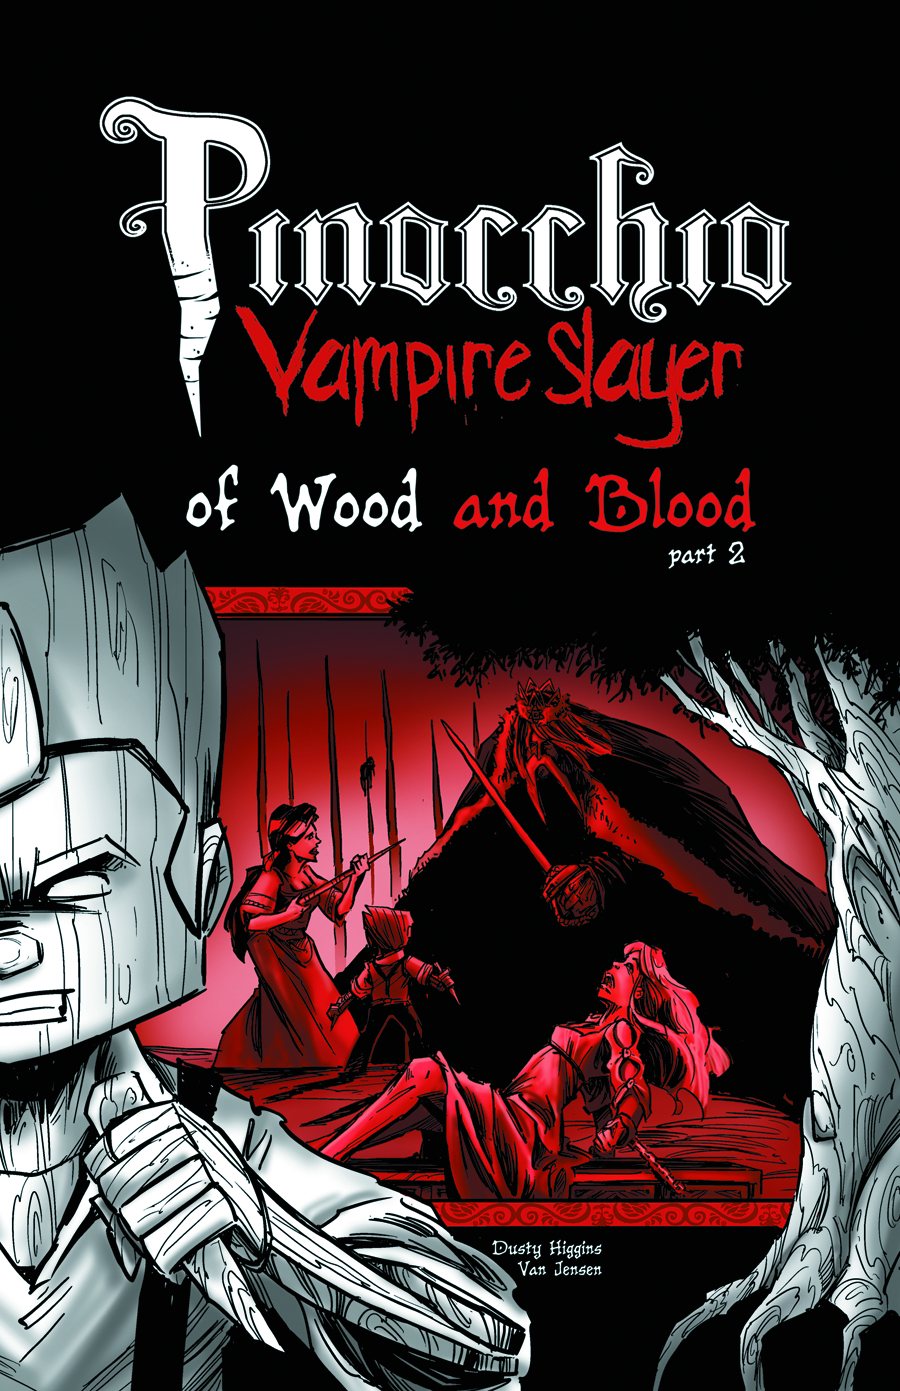 PINOCCHIO VAMPIRE SLAYER GN VOL 04 WOOD & BLOOD PT 2